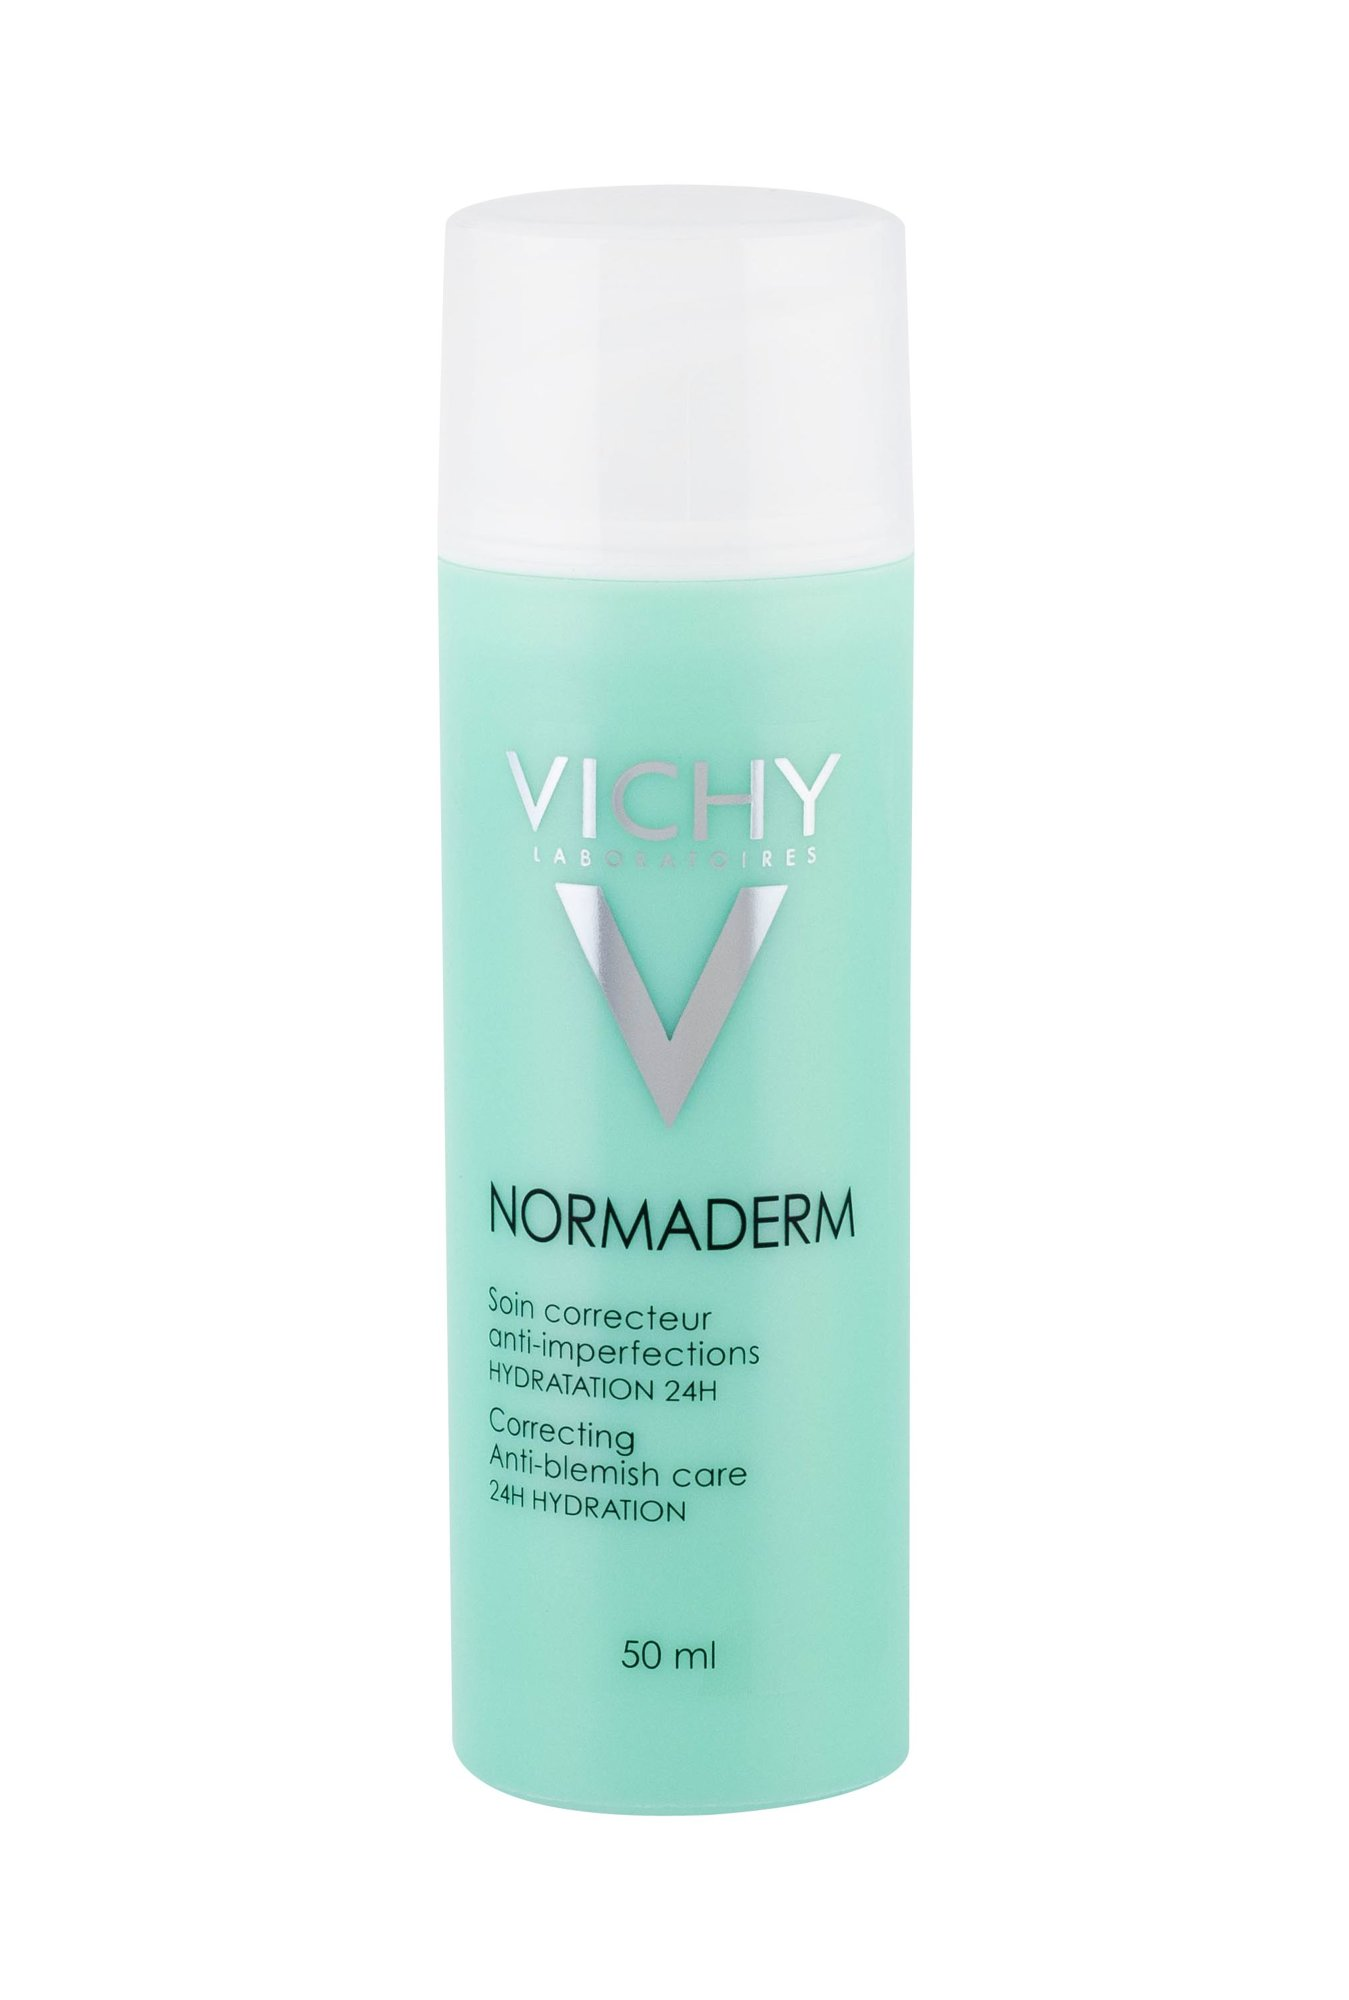 Vichy Normaderm Day Cream 50ml